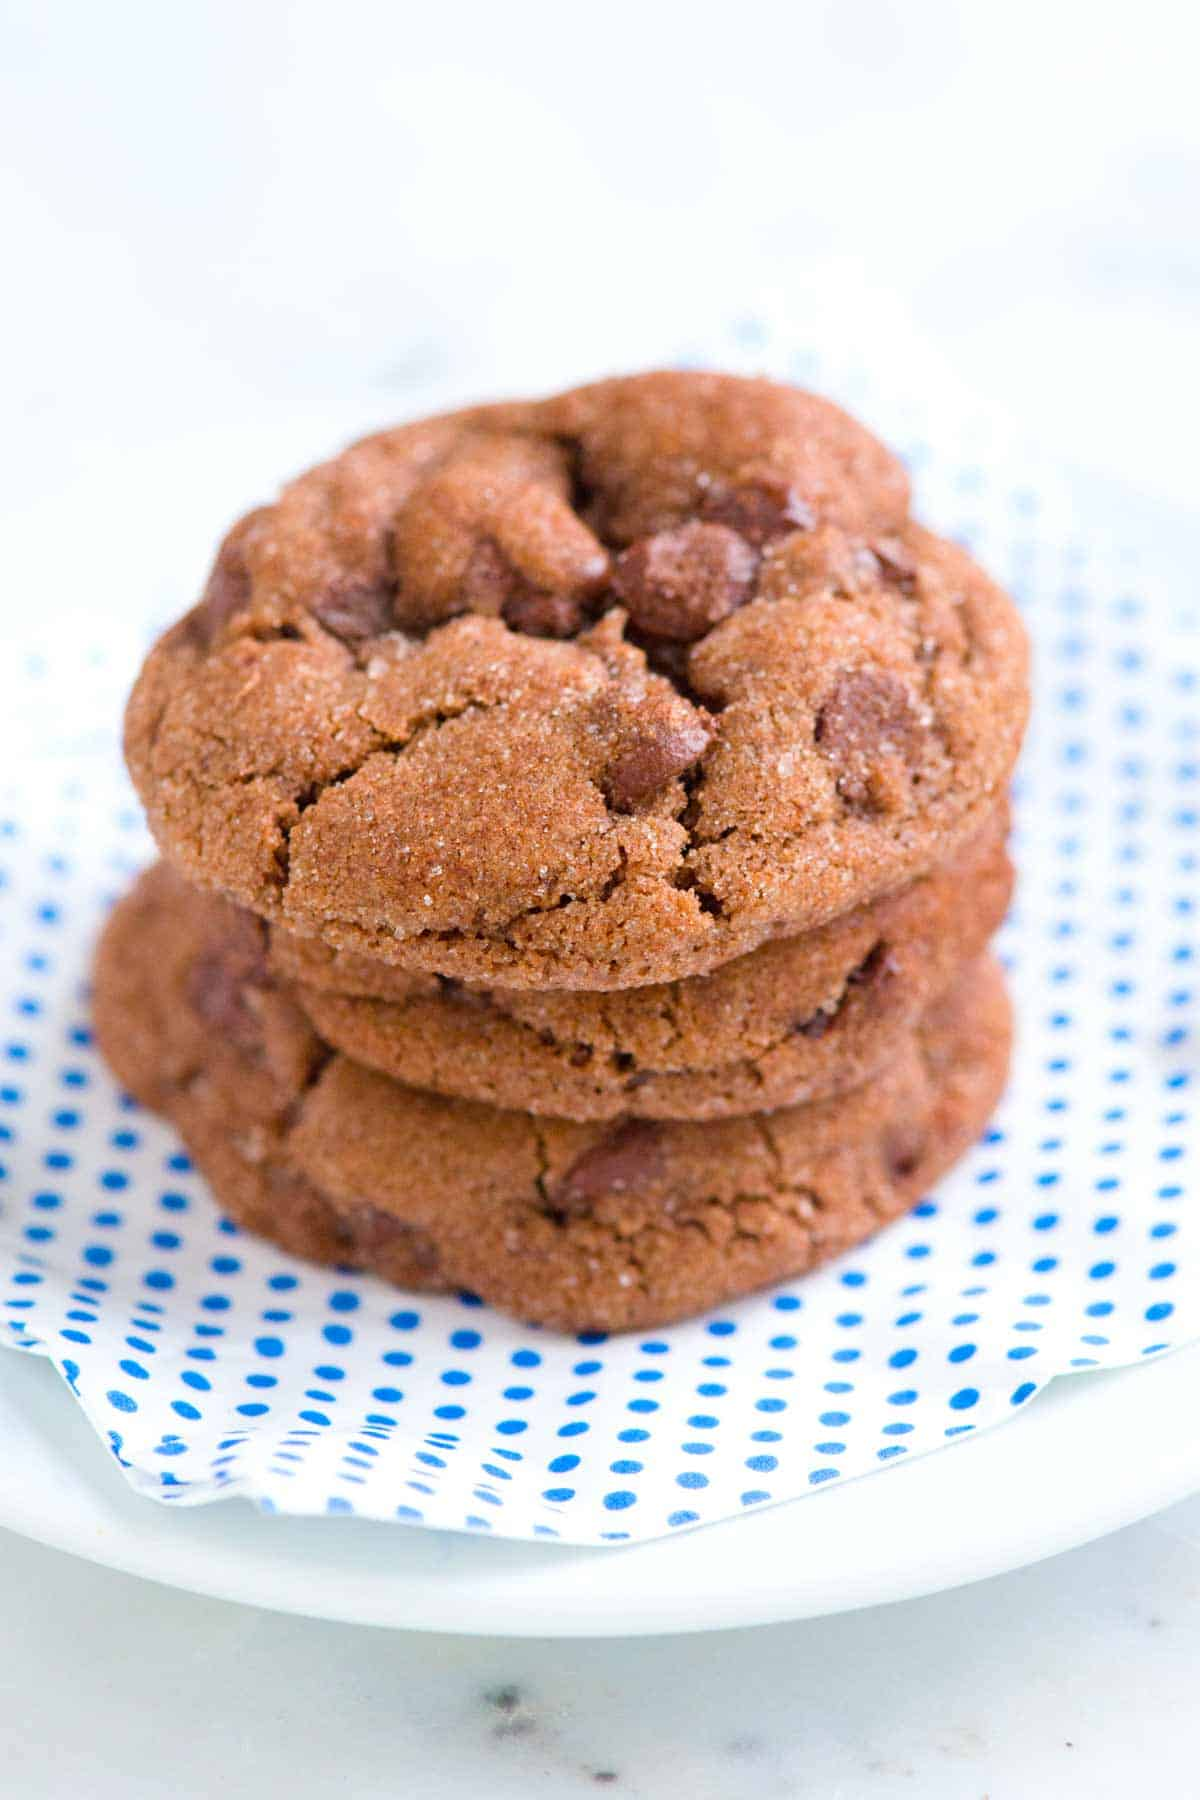 How to Make Cinnamon Chocolate Cookies